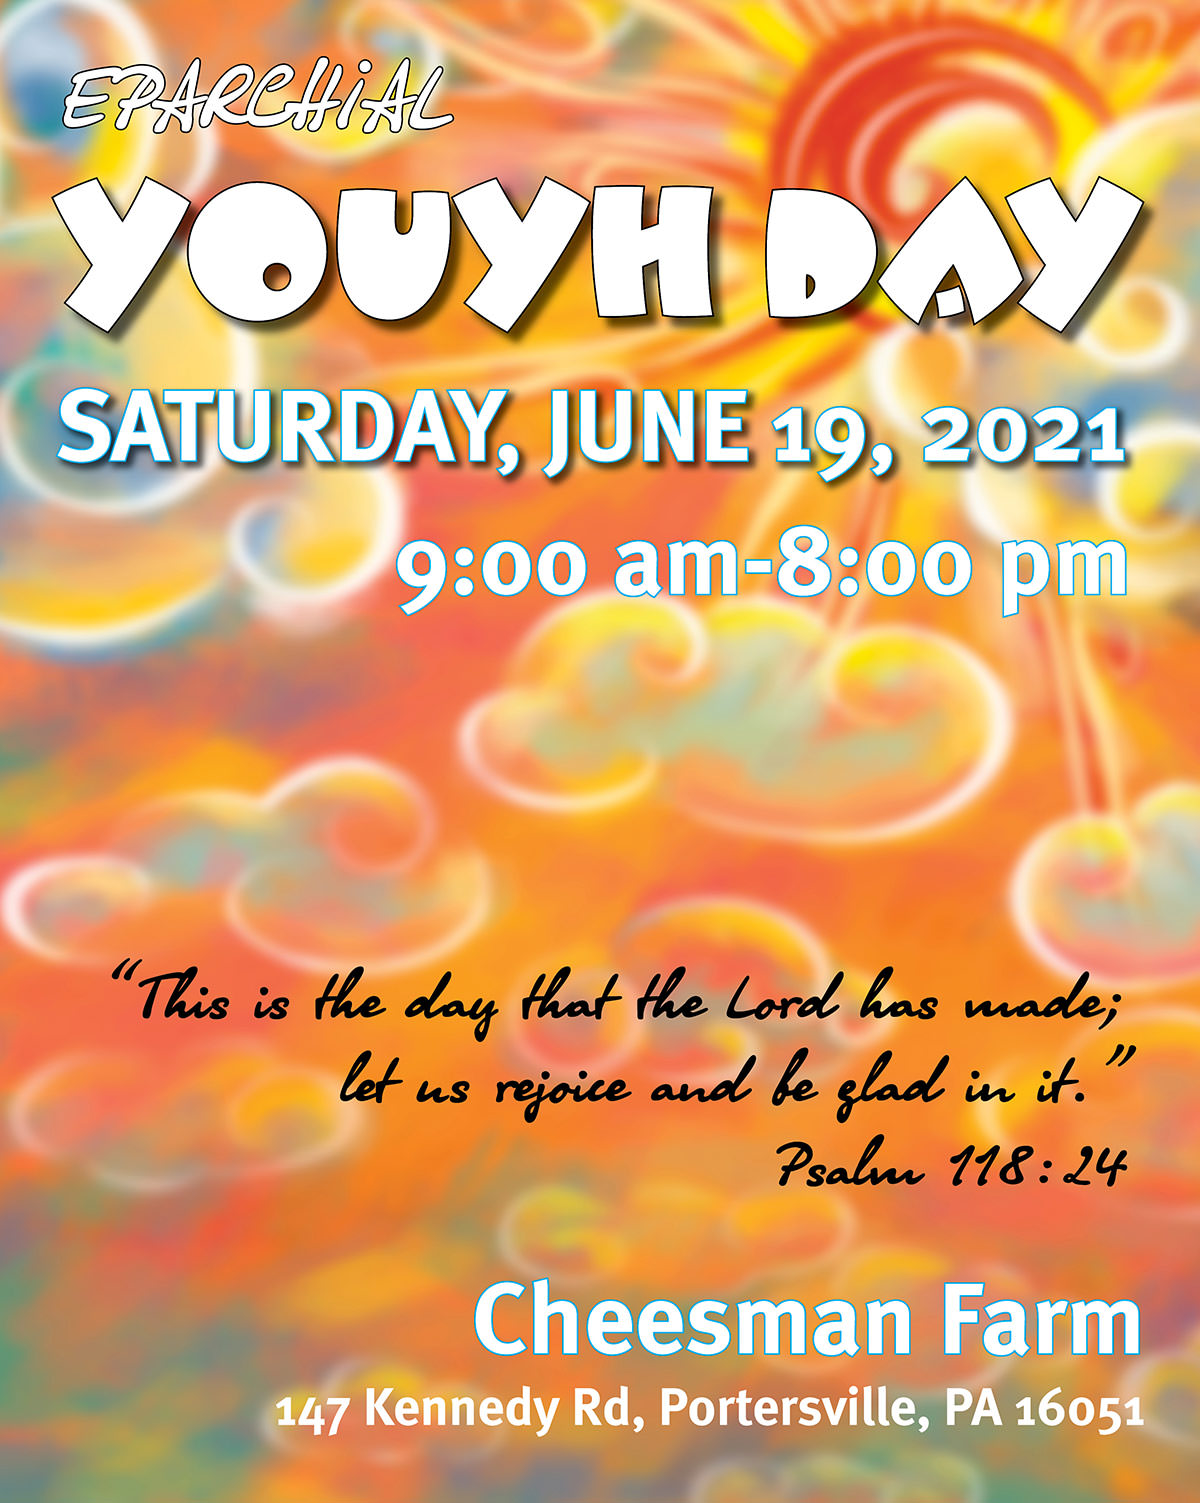 Eparchial Youth Day – June 19, 2021